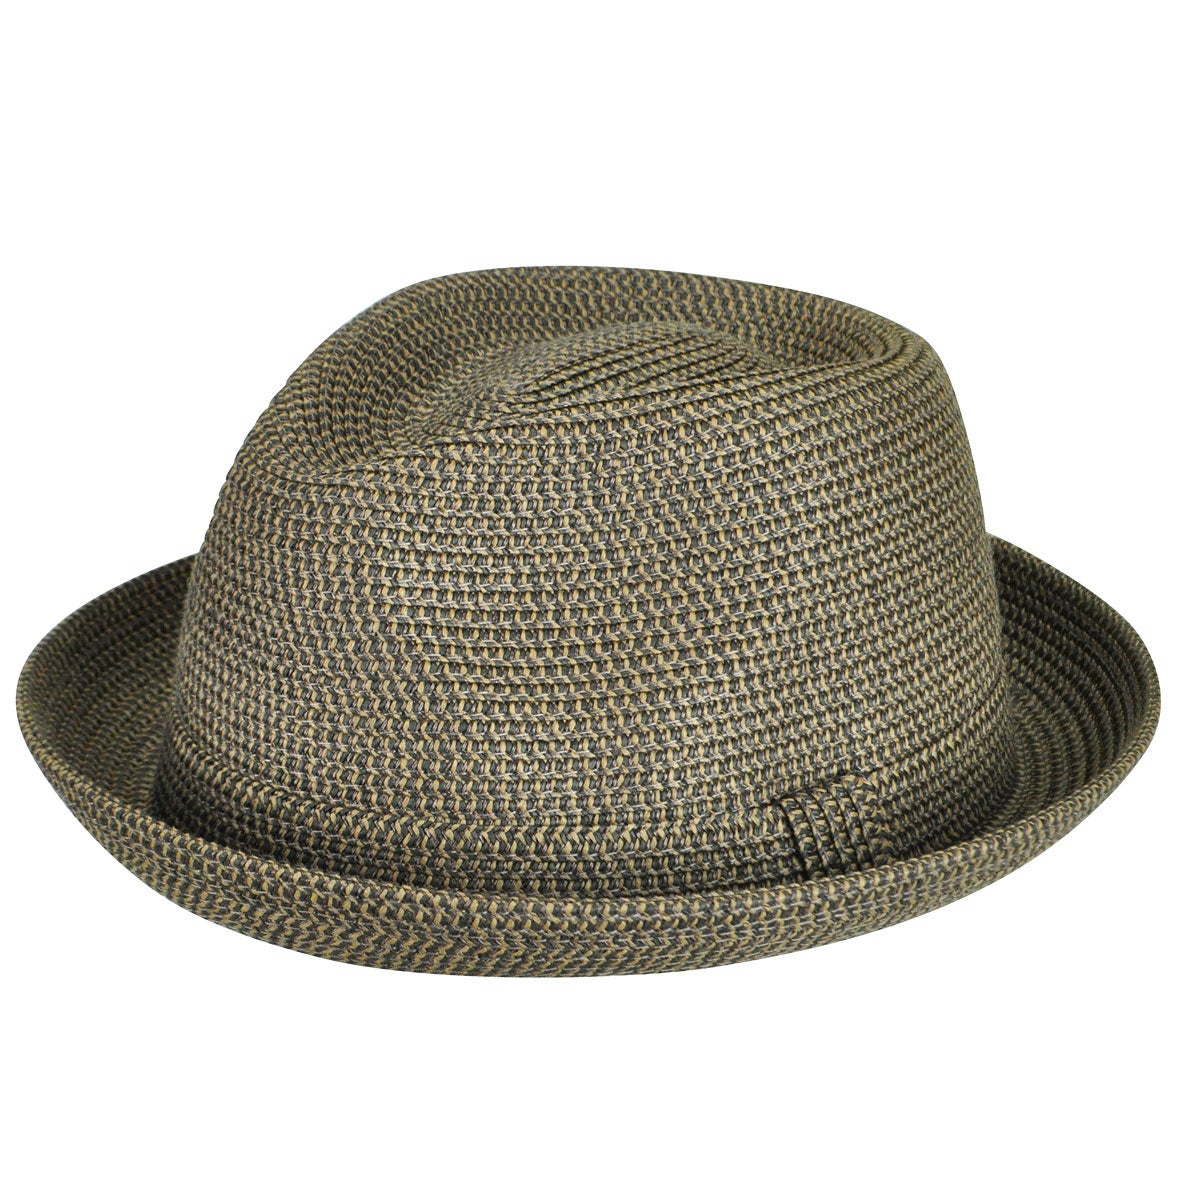 1950s Mens Hats | 50s Vintage Men's Hats Joey Braided Fedora $43.00 AT vintagedancer.com